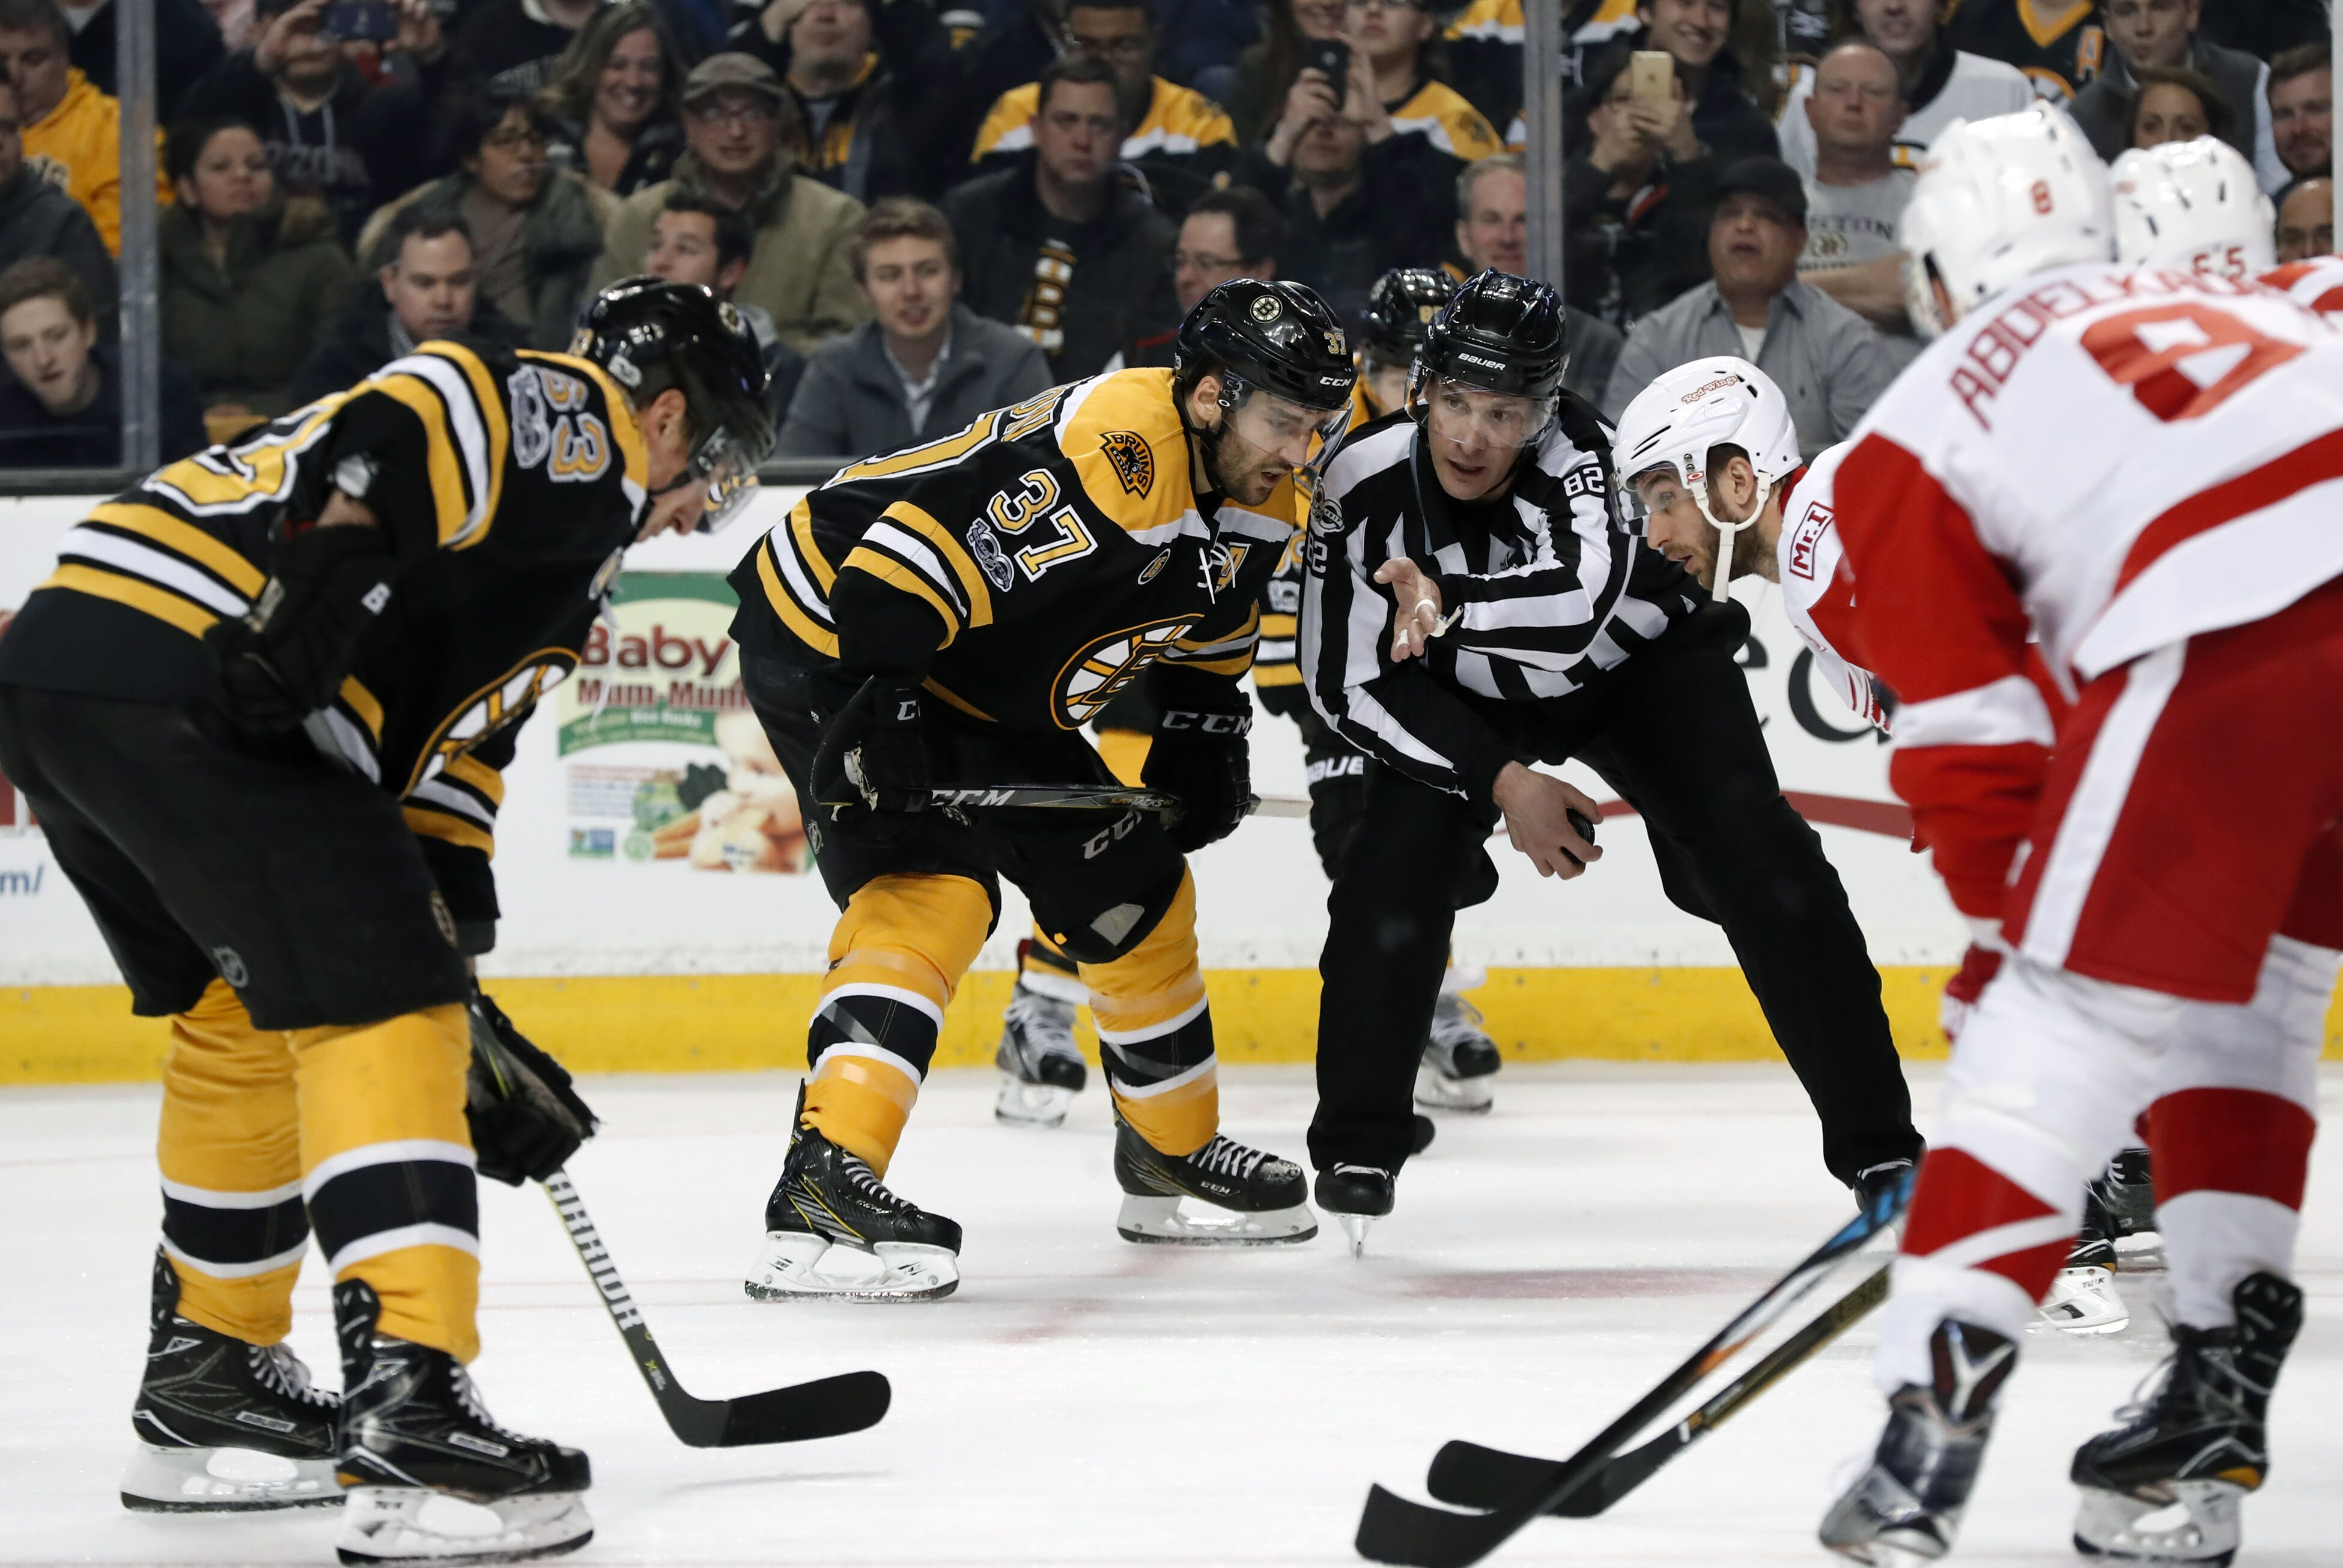 653425704-nhl-mar-08-red-wings-at-bruins.jpg